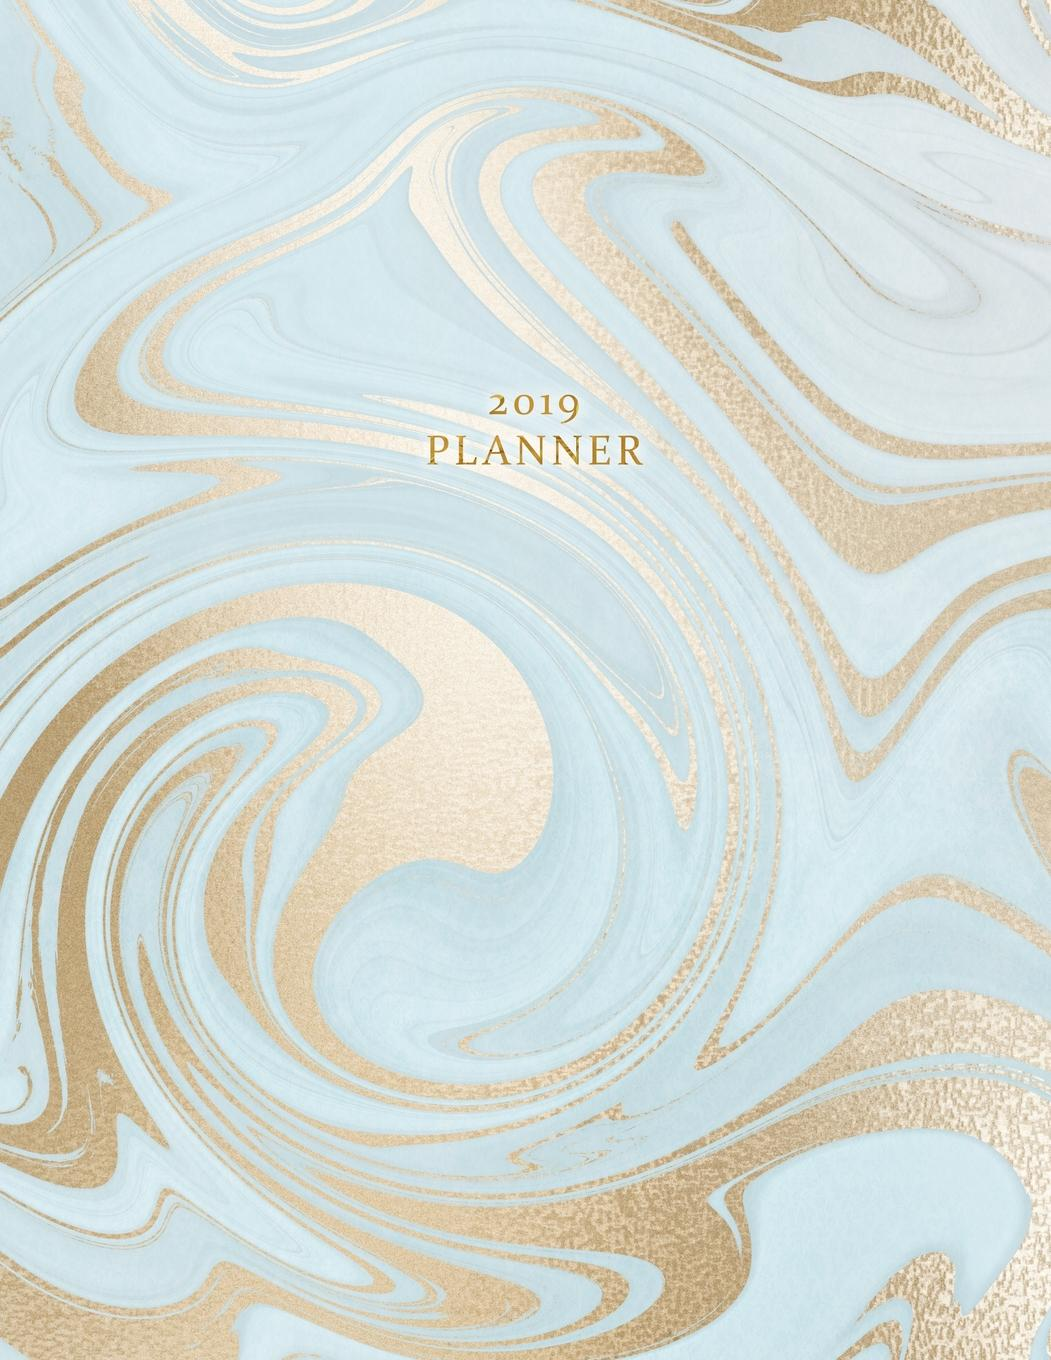 photo relating to Monthly Organizer named 2019 Planner: Weekly and Regular Planner Calendar Organizer Program (January 2019 toward December 2019) Sky Blue Gold Marble (Paperback)